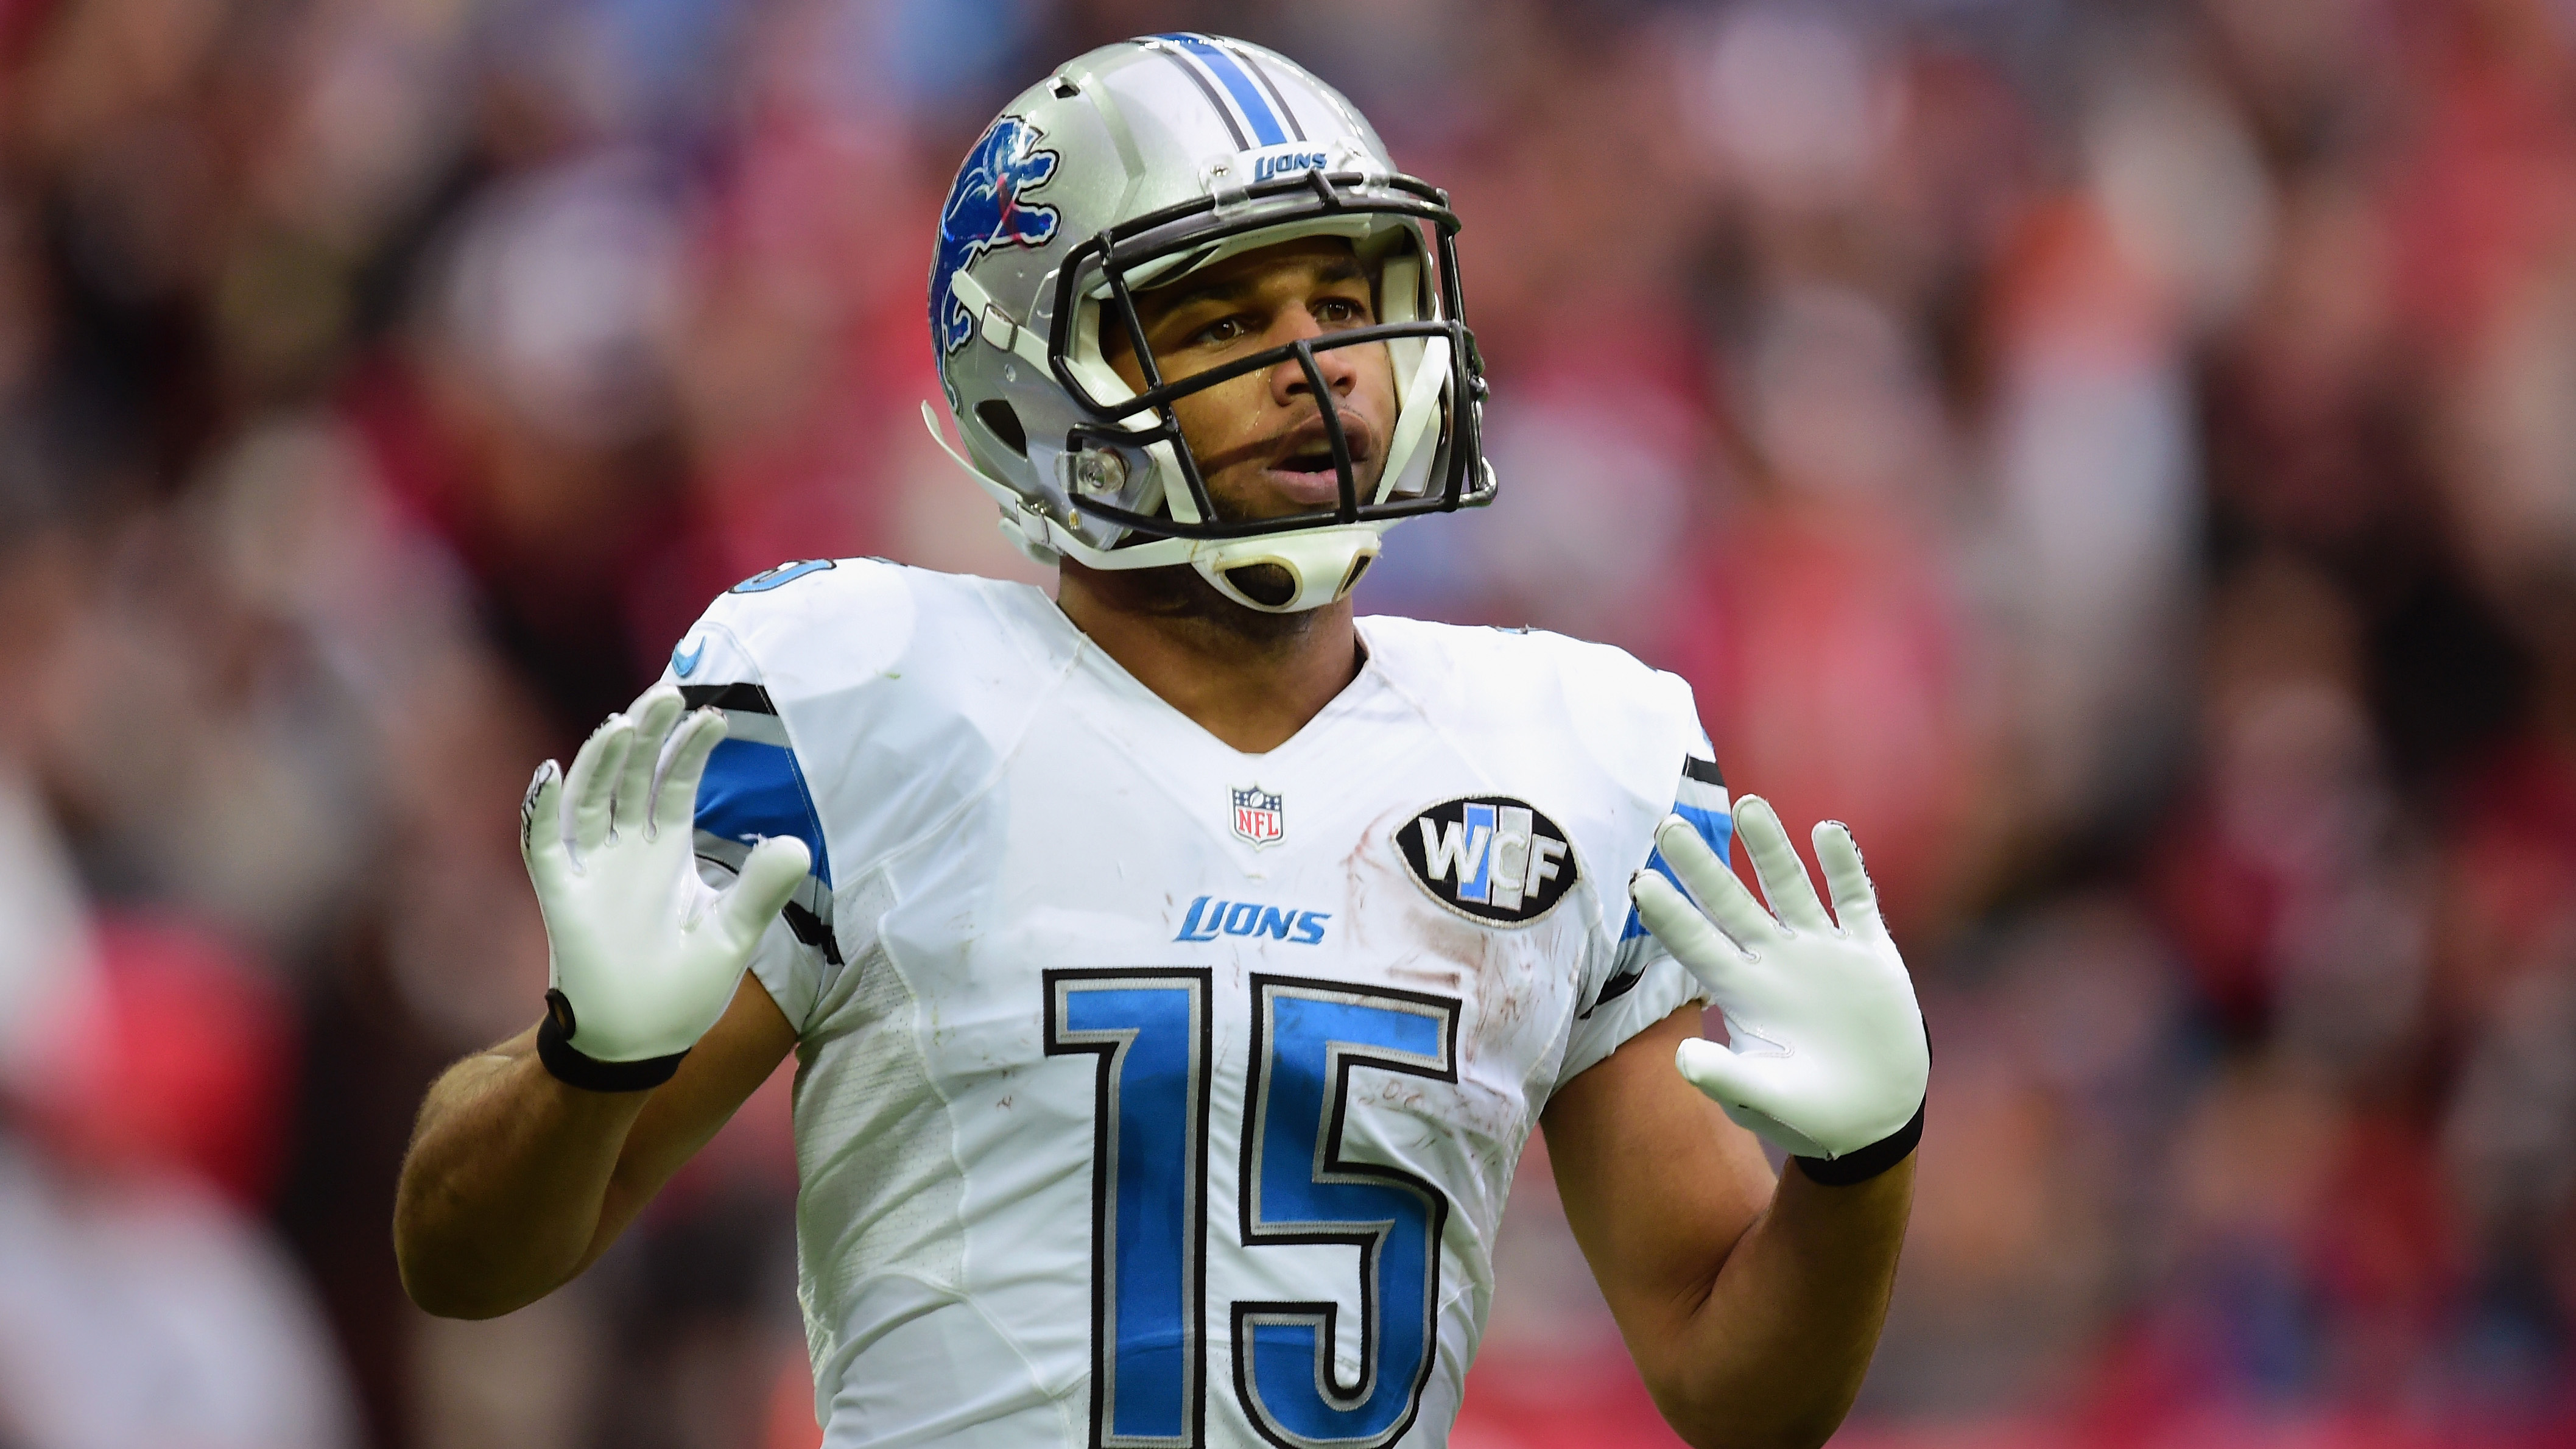 golden tate - photo #22